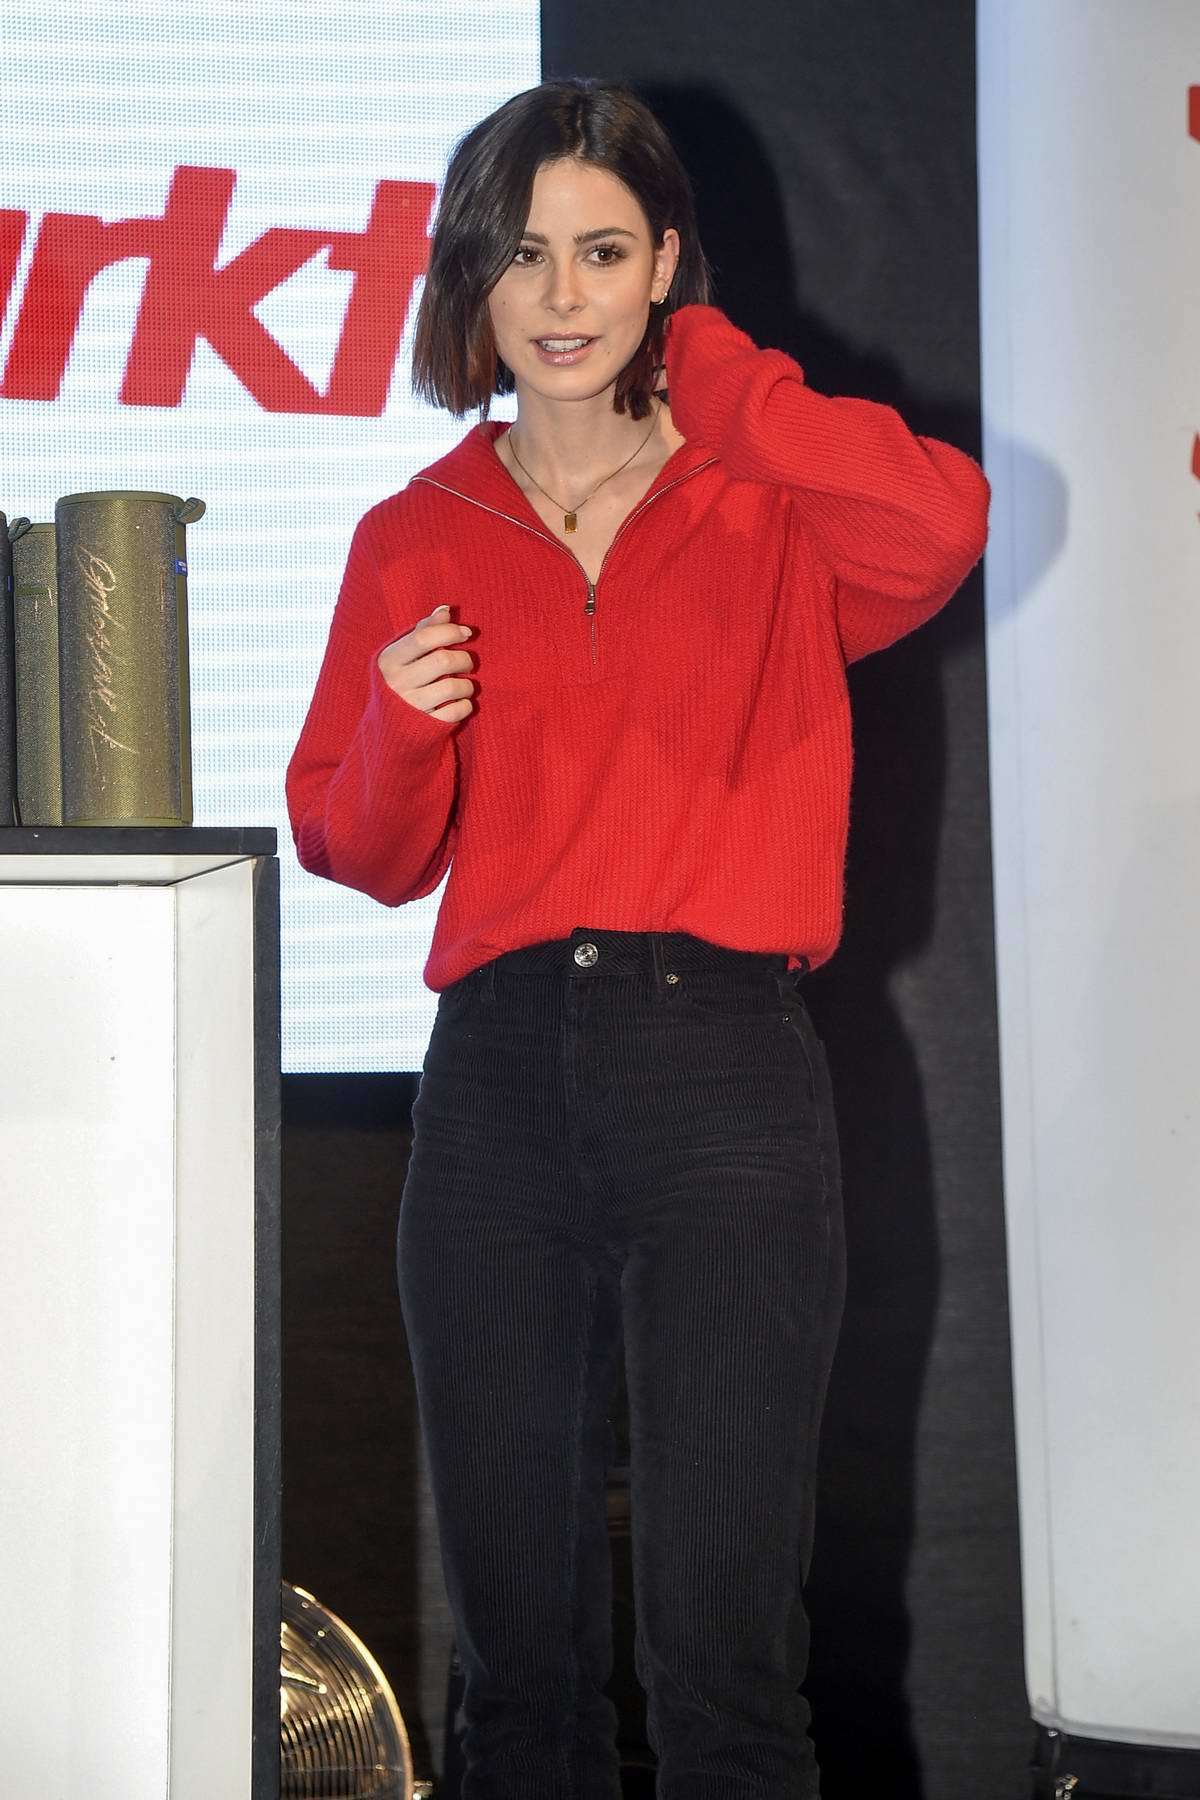 Lena Meyer Landrut Signs Autographs During The Promotion Of Her New Album Only Love L In Berlin Germany 090419 3